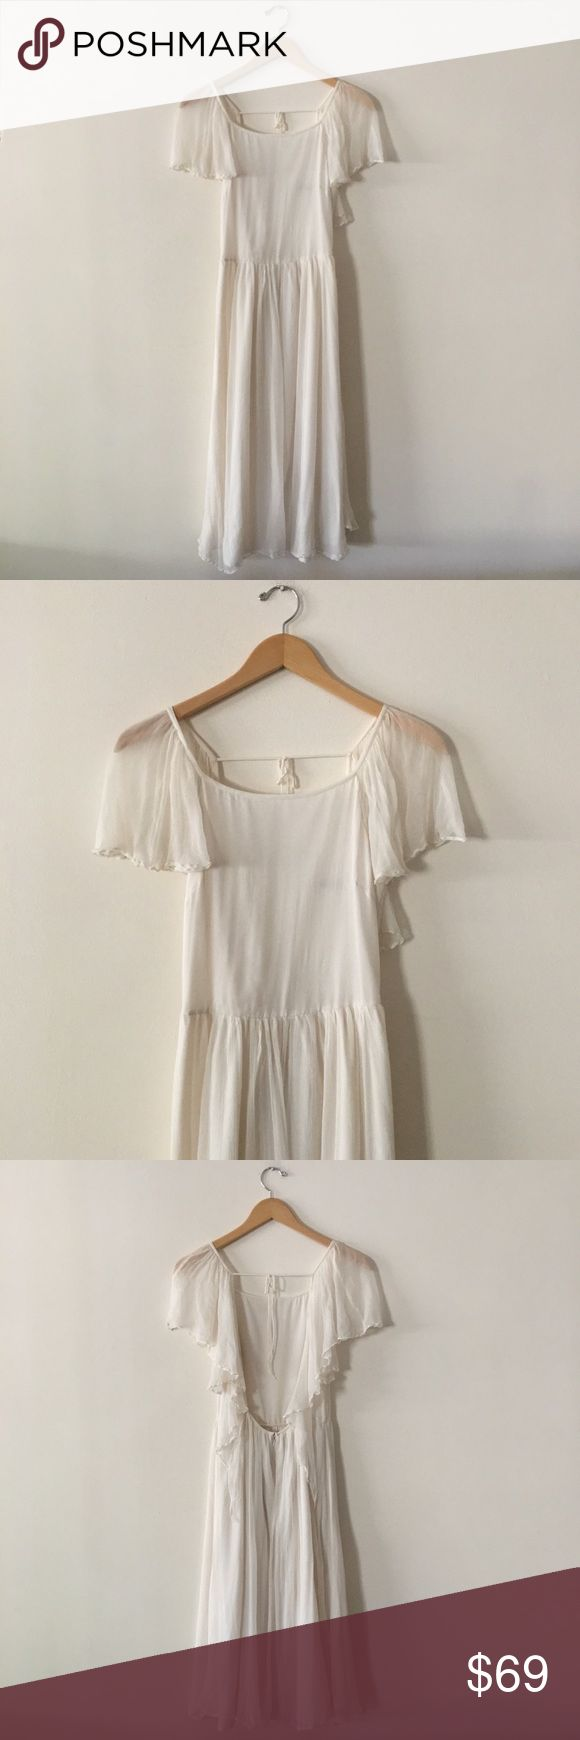 """Topshop Flowy Cascade Maxi Dress Cream colored dress with gorgeous back design. Back of dress features a tie across upper back and flowy chiffon angel wings. Back zipper with clasp. *Front has a small light stain near waist. See photo for reference. Length: 44"""" Armpit to Armpit: 16"""" Topshop Dresses Maxi"""